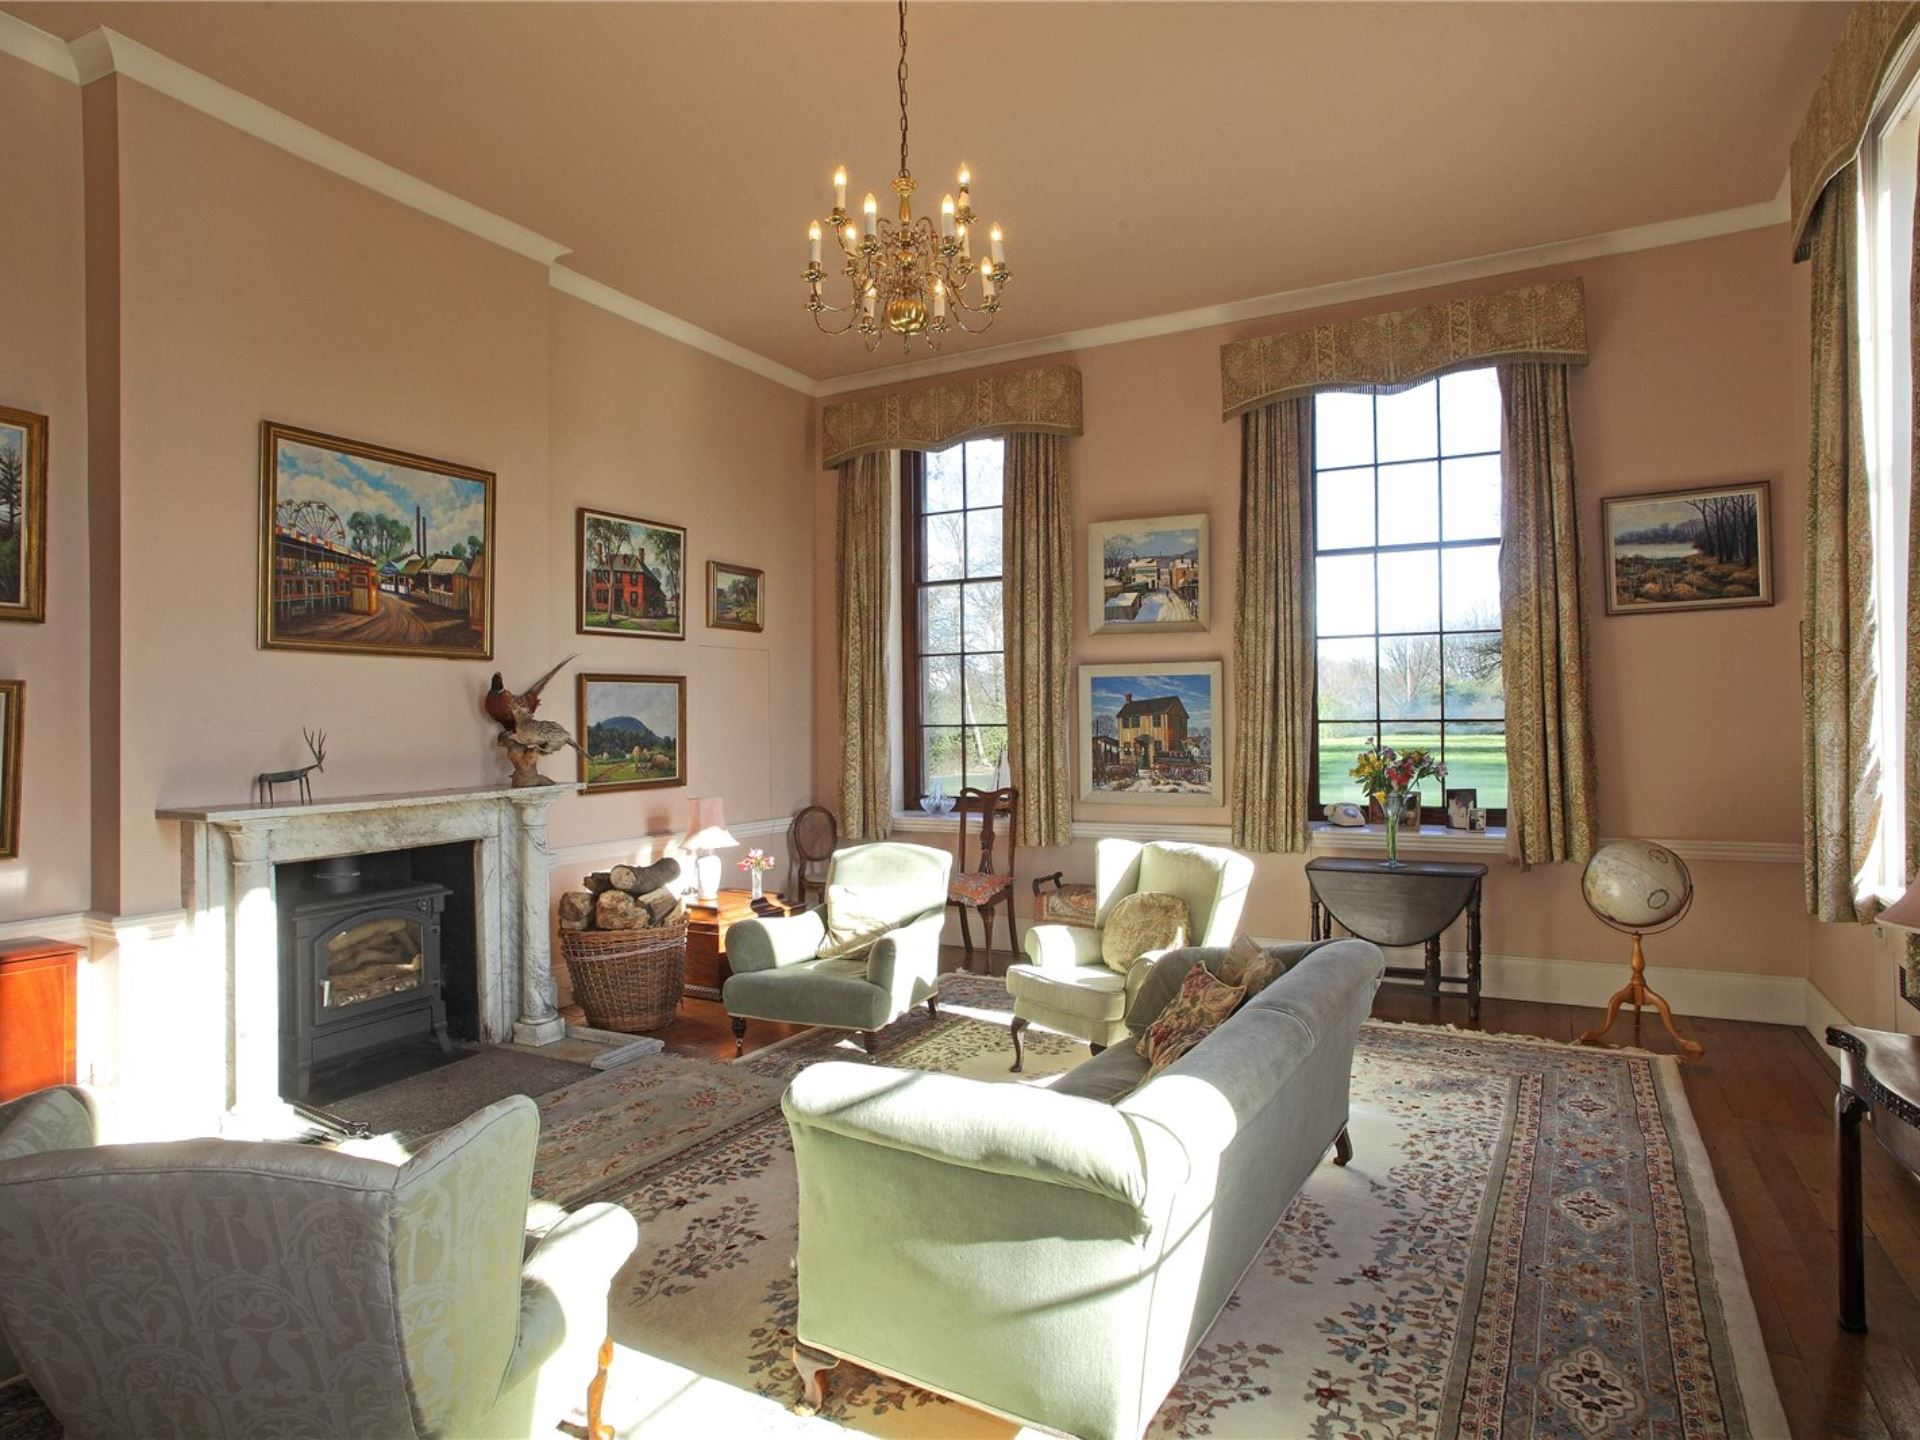 Oakley Hall 9 (Savills)